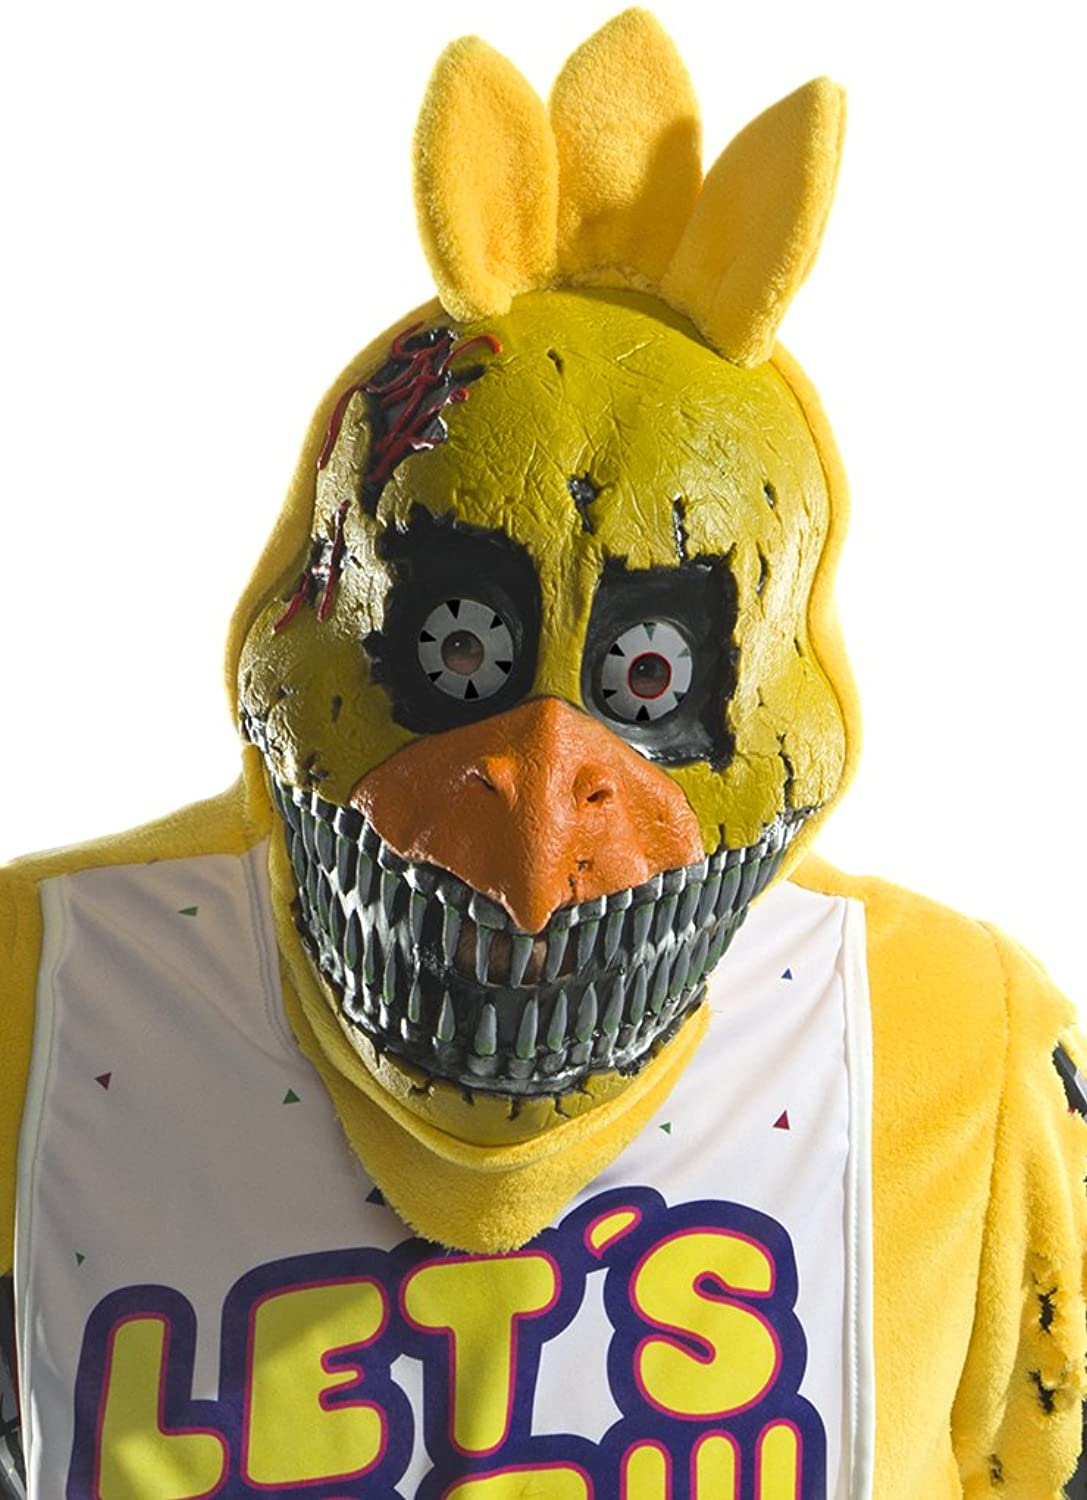 2017 05 freddy fazbear costume amazon - Amazon Com Rubie S Costume Co Men S Five Nights At Freddy S Nightmare Chica 3 4 Mask As Shown One Size Clothing